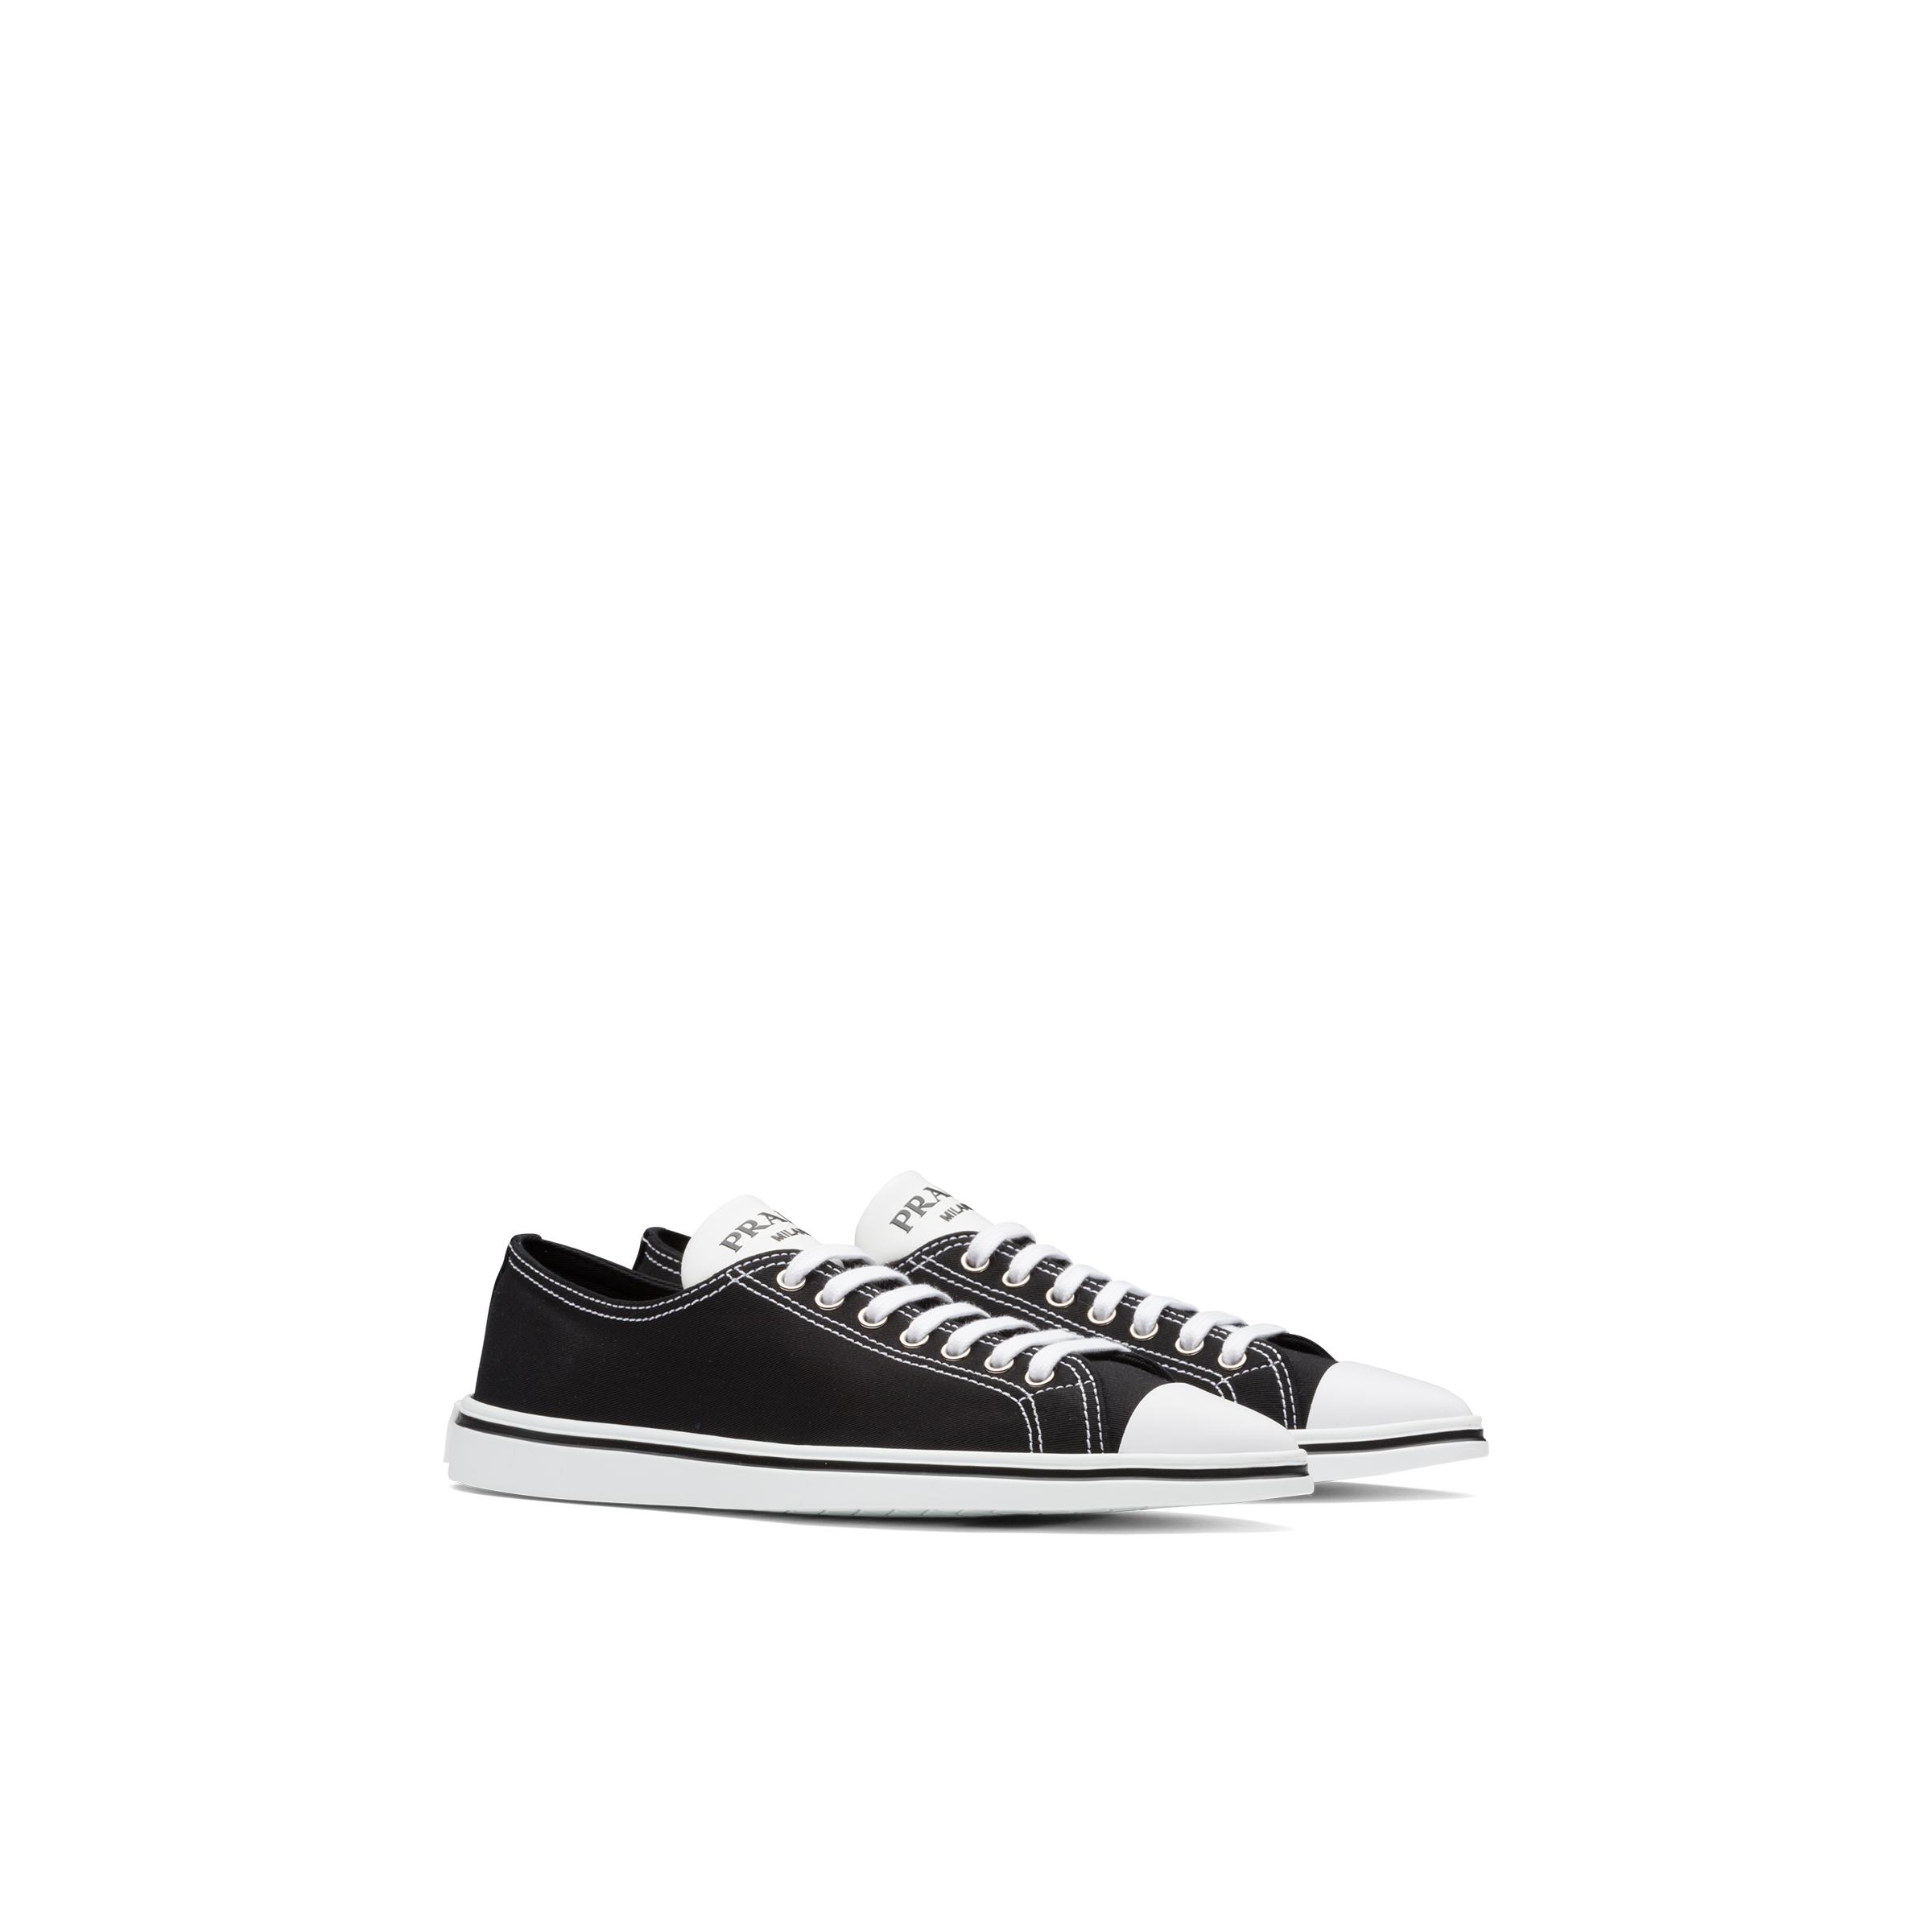 Synthesis Sneakers Women Black